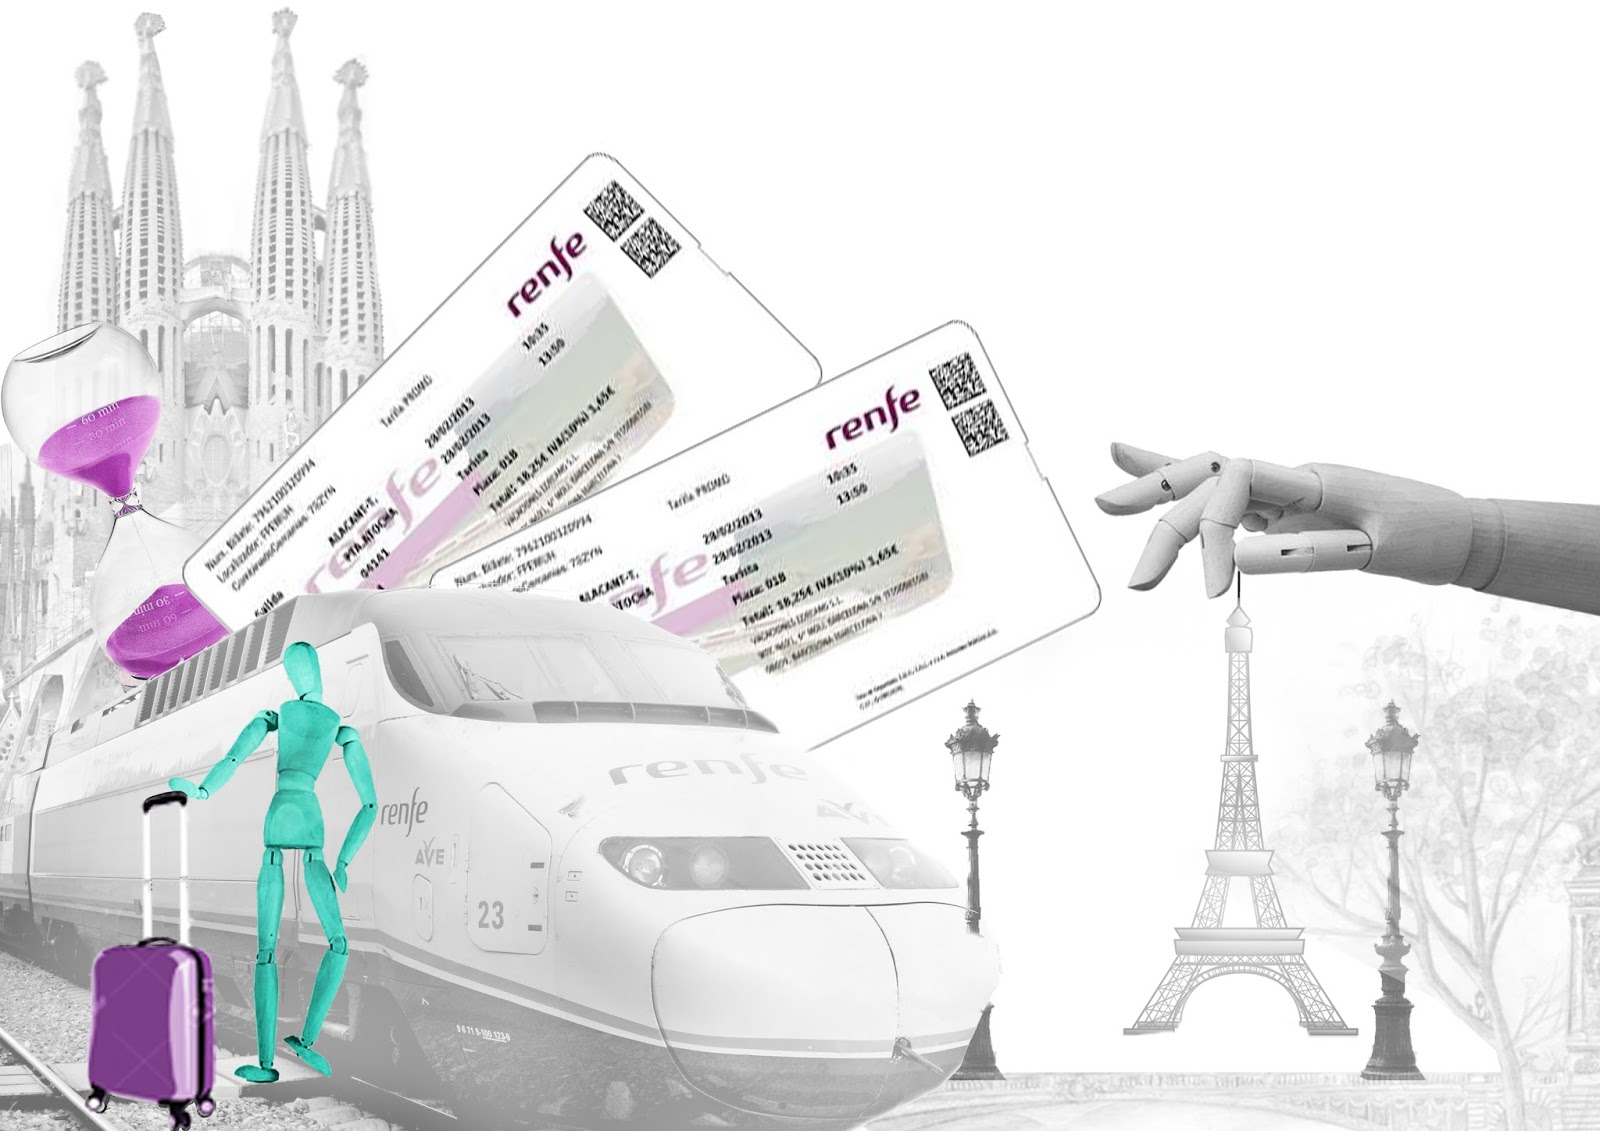 Les v ments de monsieur priv for Renfe barcelona paris